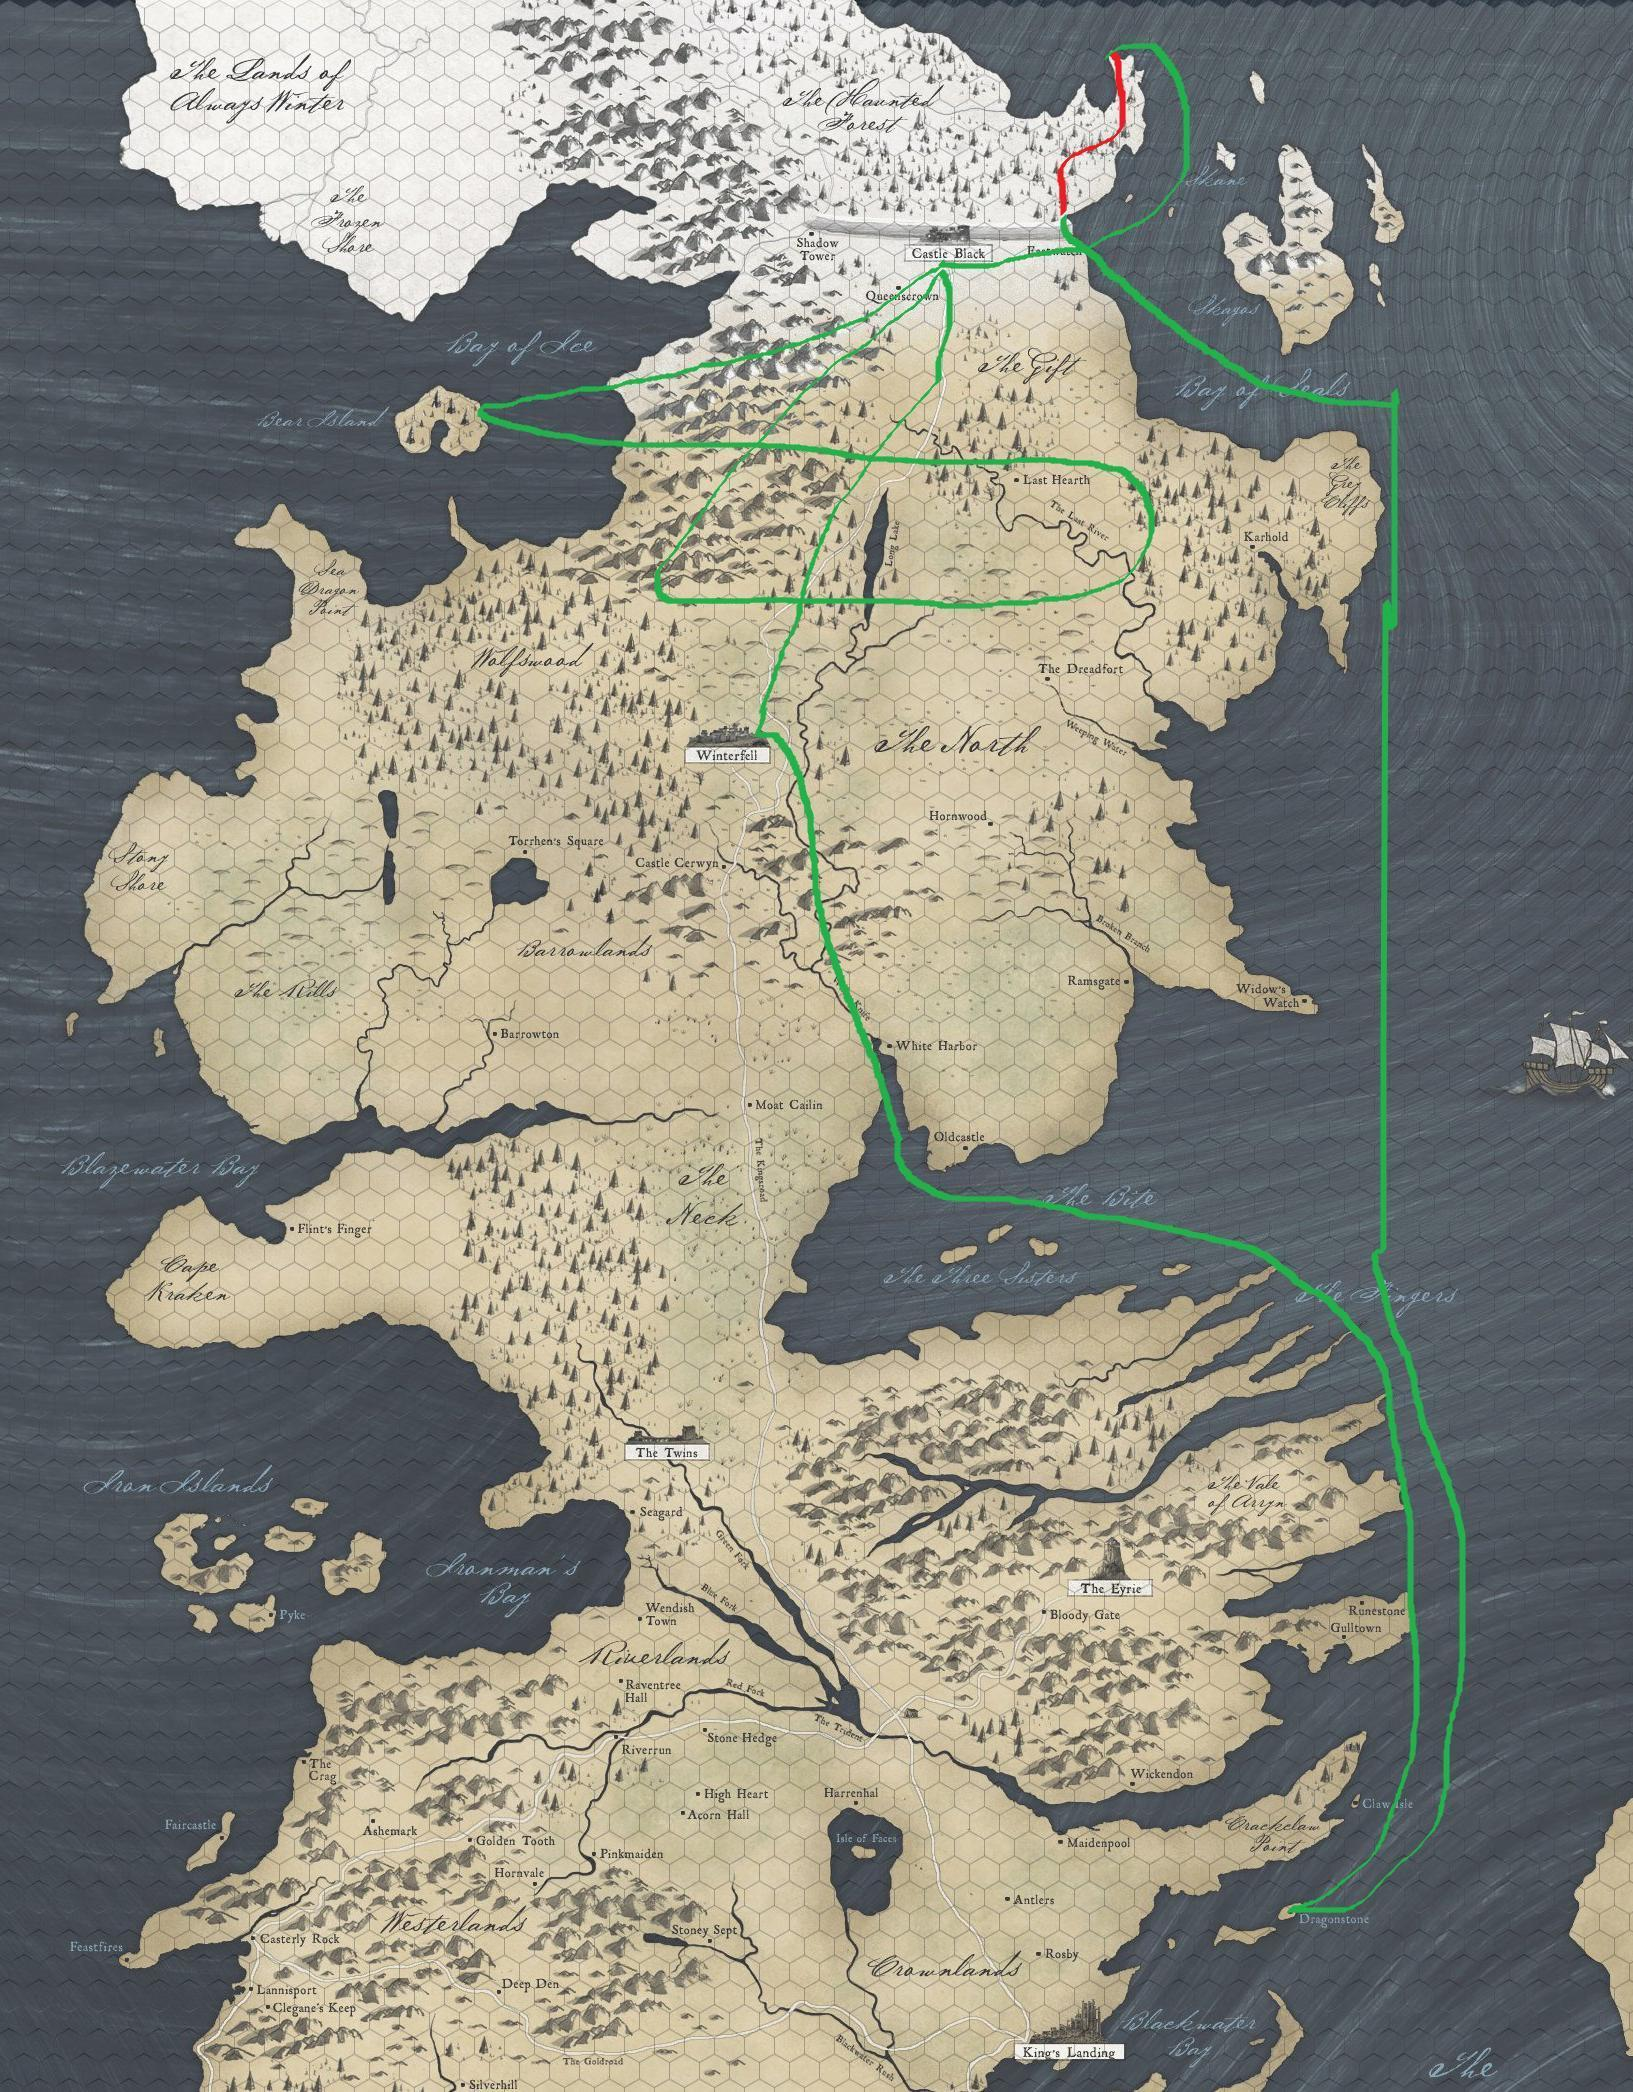 Game of Thrones season 7: White Crawlers? Map shows how far ... Game O Thrones Map on sons of anarchy, fire and blood, gendry map, the kingsroad, themes in a song of ice and fire, a game of thrones collectible card game, clash of kings map, justified map, dallas map, a storm of swords map, valyria map, the prince of winterfell, world map, downton abbey map, star trek map, jericho map, a storm of swords, lord snow, camelot map, guild wars 2 map, spooksville map, winter is coming, walking dead map, a clash of kings, narnia map, a game of thrones, jersey shore map, winterfell map, bloodline map, a game of thrones: genesis, works based on a song of ice and fire, game of thrones - season 1, the pointy end, a golden crown, got map, game of thrones - season 2, tales of dunk and egg, qarth map,